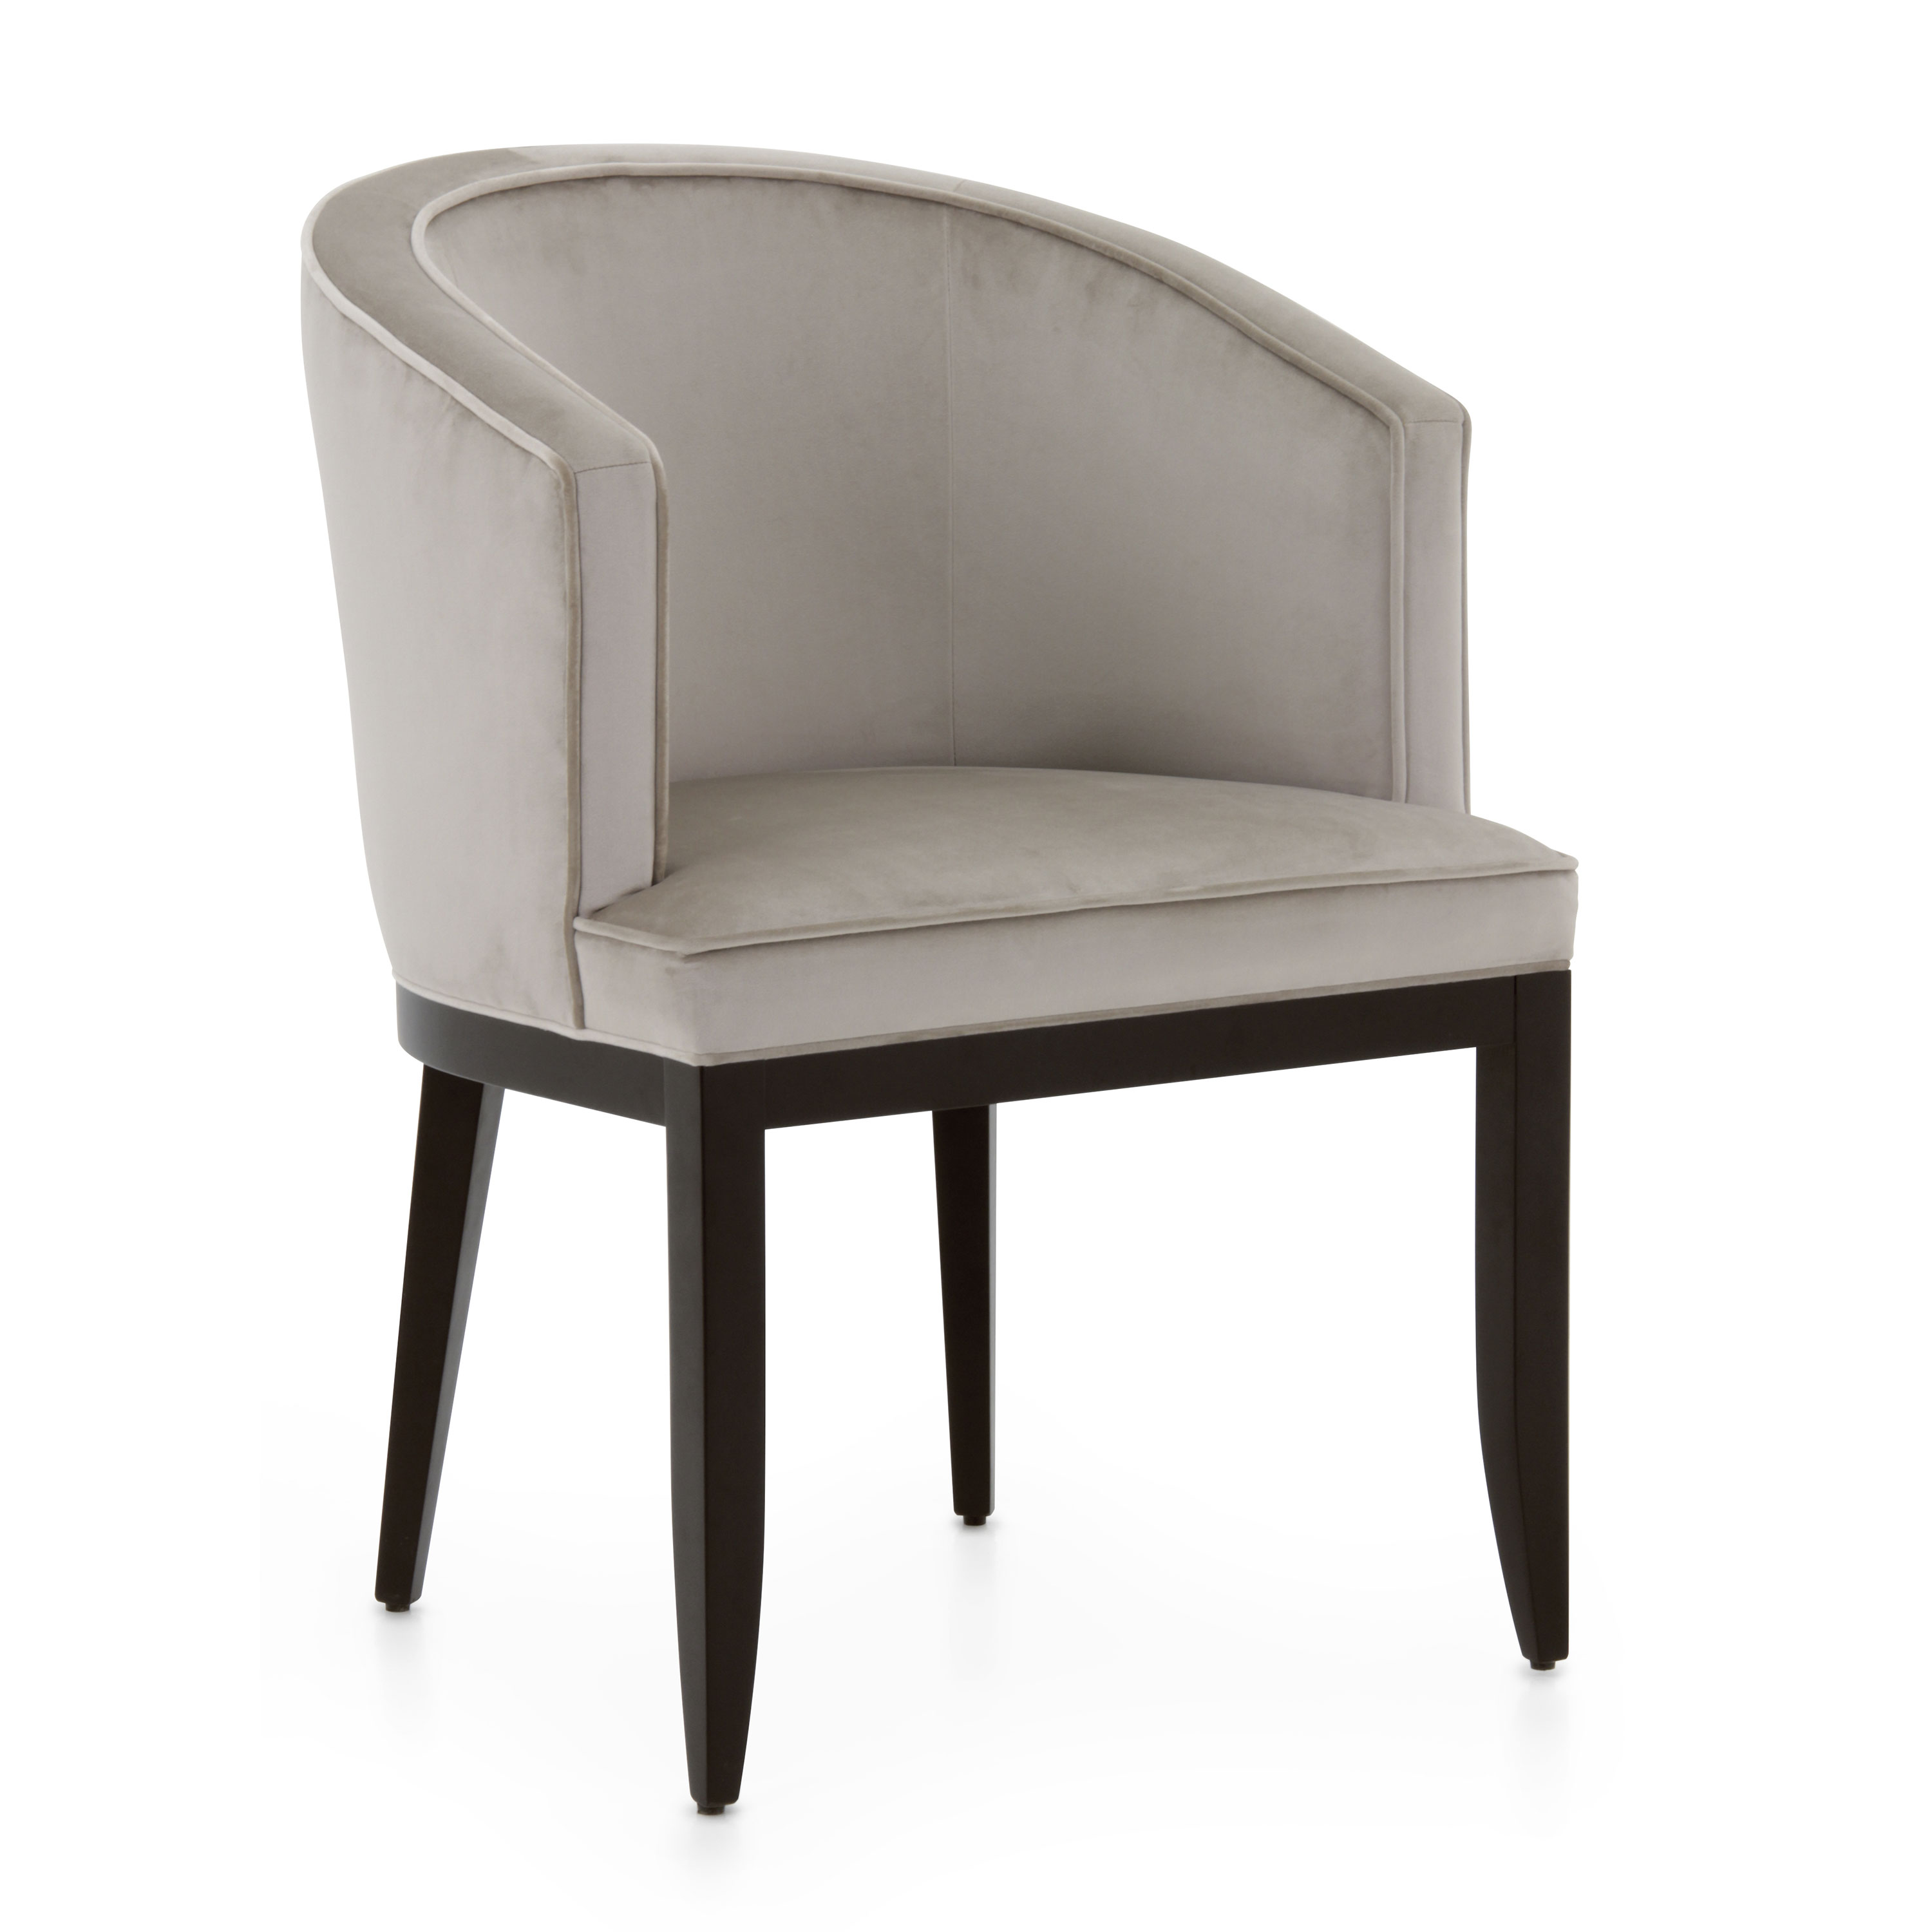 Magnificent Contemporary Style Tub Chair Made Of Wood Dalila Sevensedie Ibusinesslaw Wood Chair Design Ideas Ibusinesslaworg